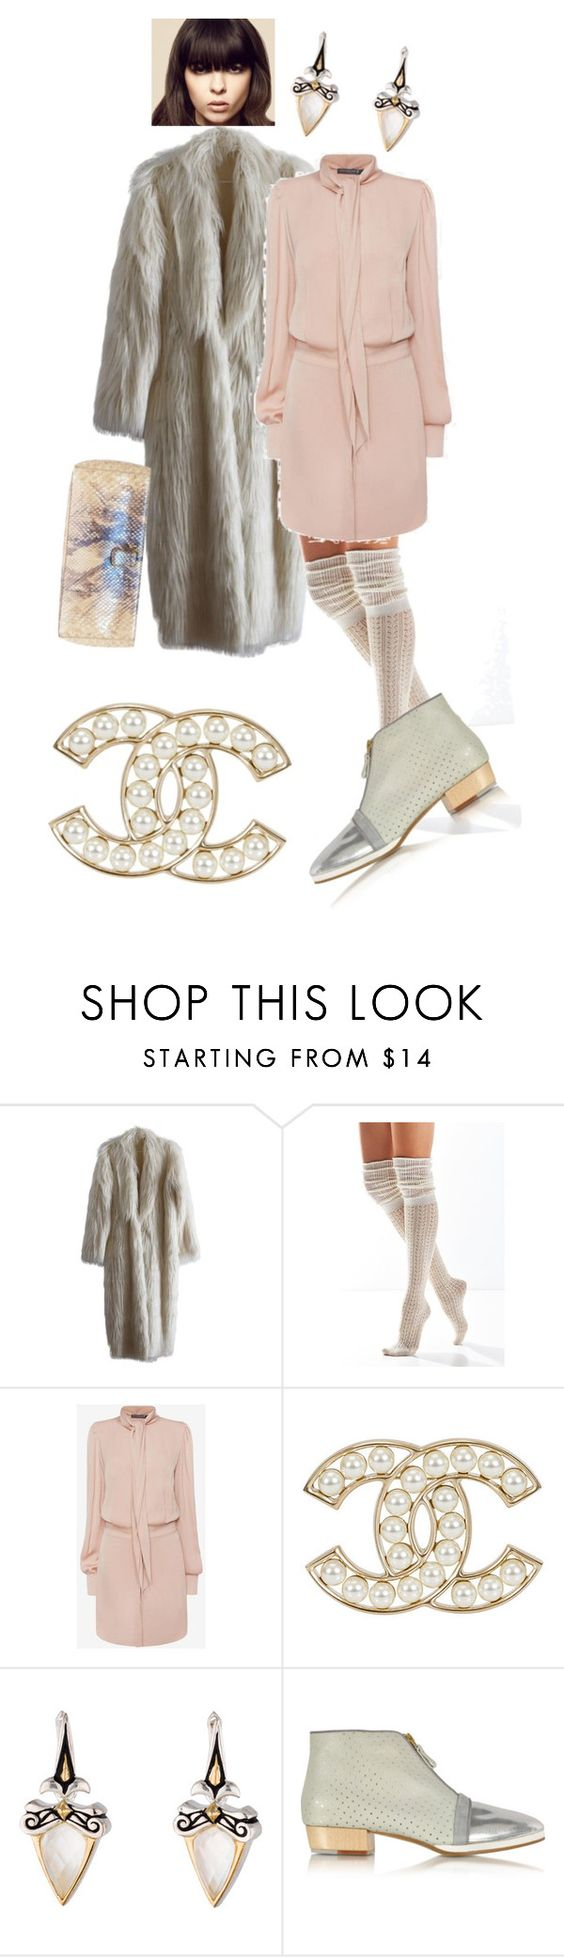 """Untitled #408"" by jeauhall ❤ liked on Polyvore featuring Urban Outfitters, Alexander McQueen, Stephen Webster, Zoe Lee and Nancy Gonzalez"